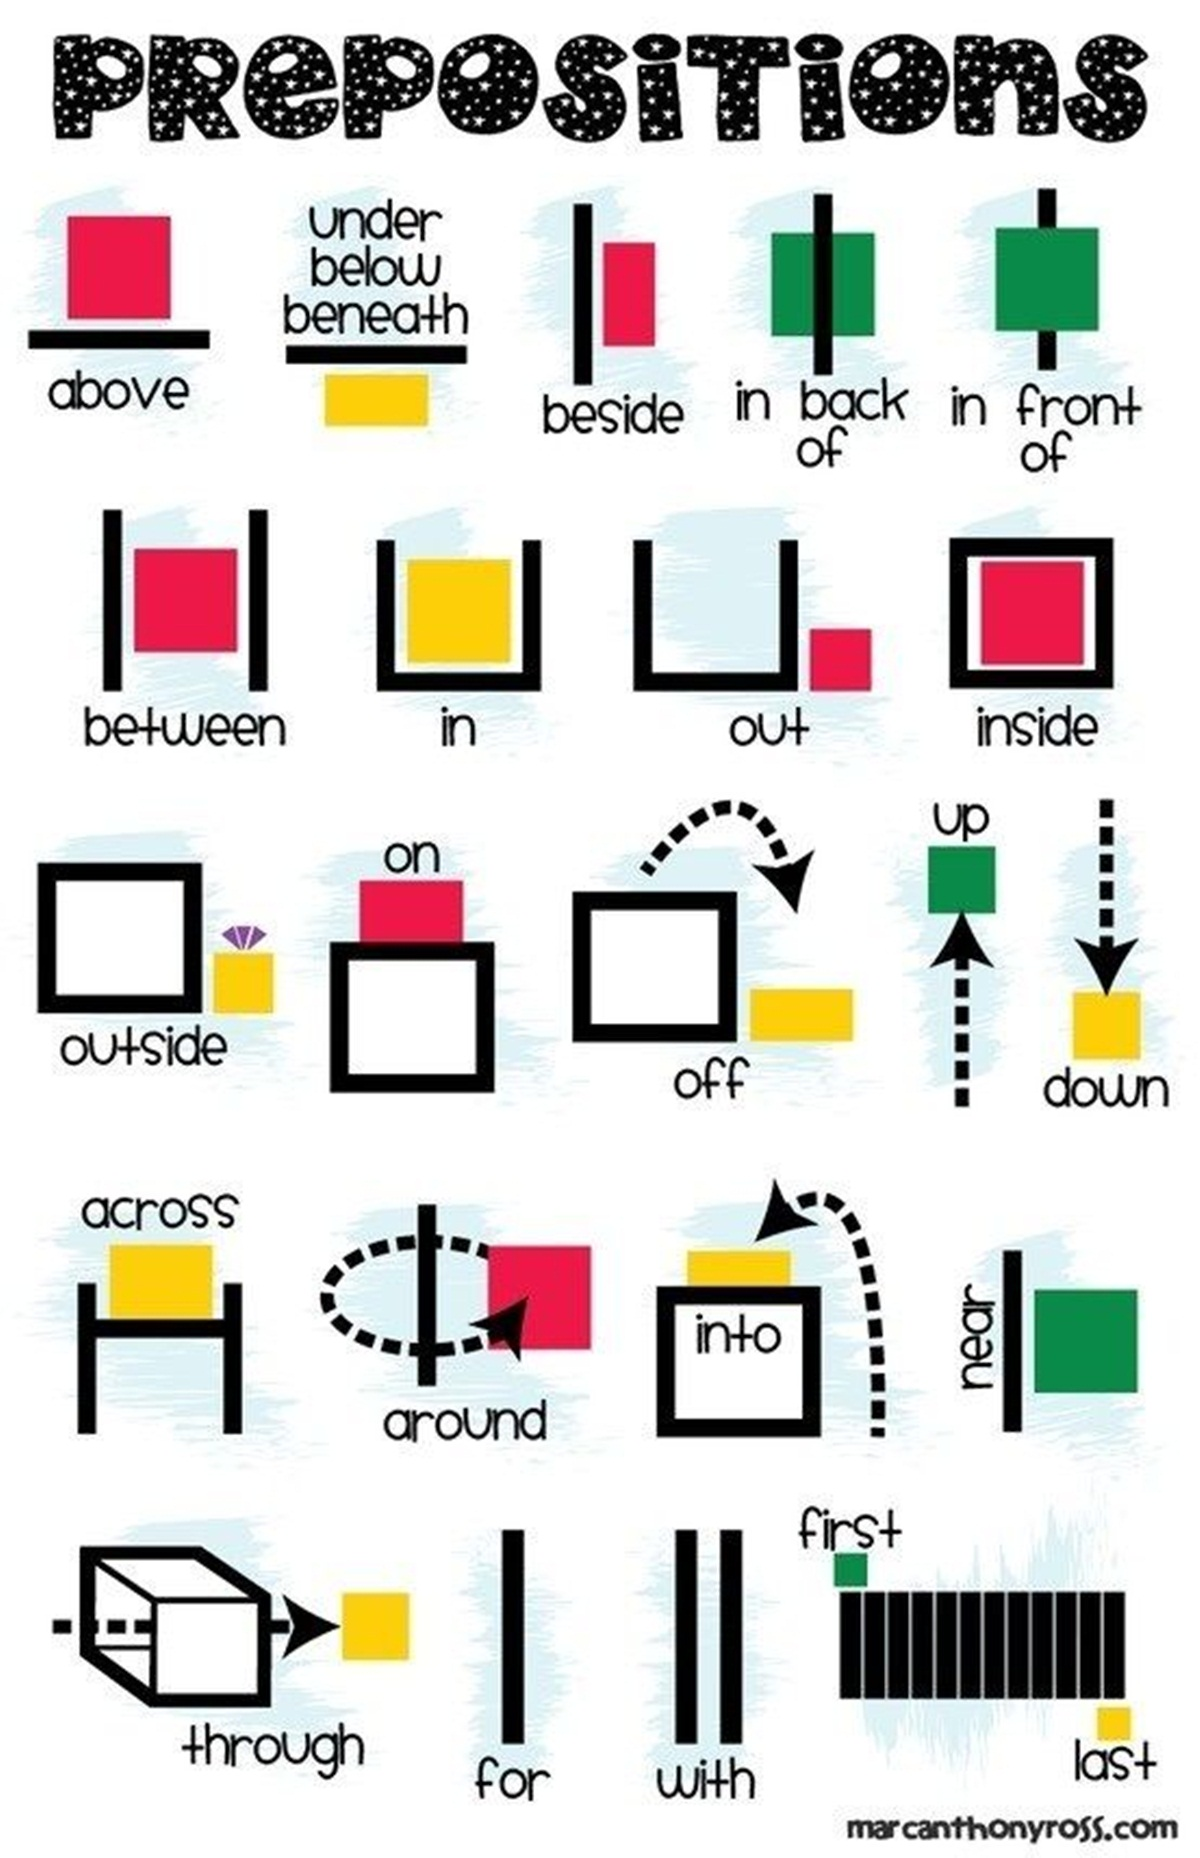 Prepositions of Place & Movement in English 3